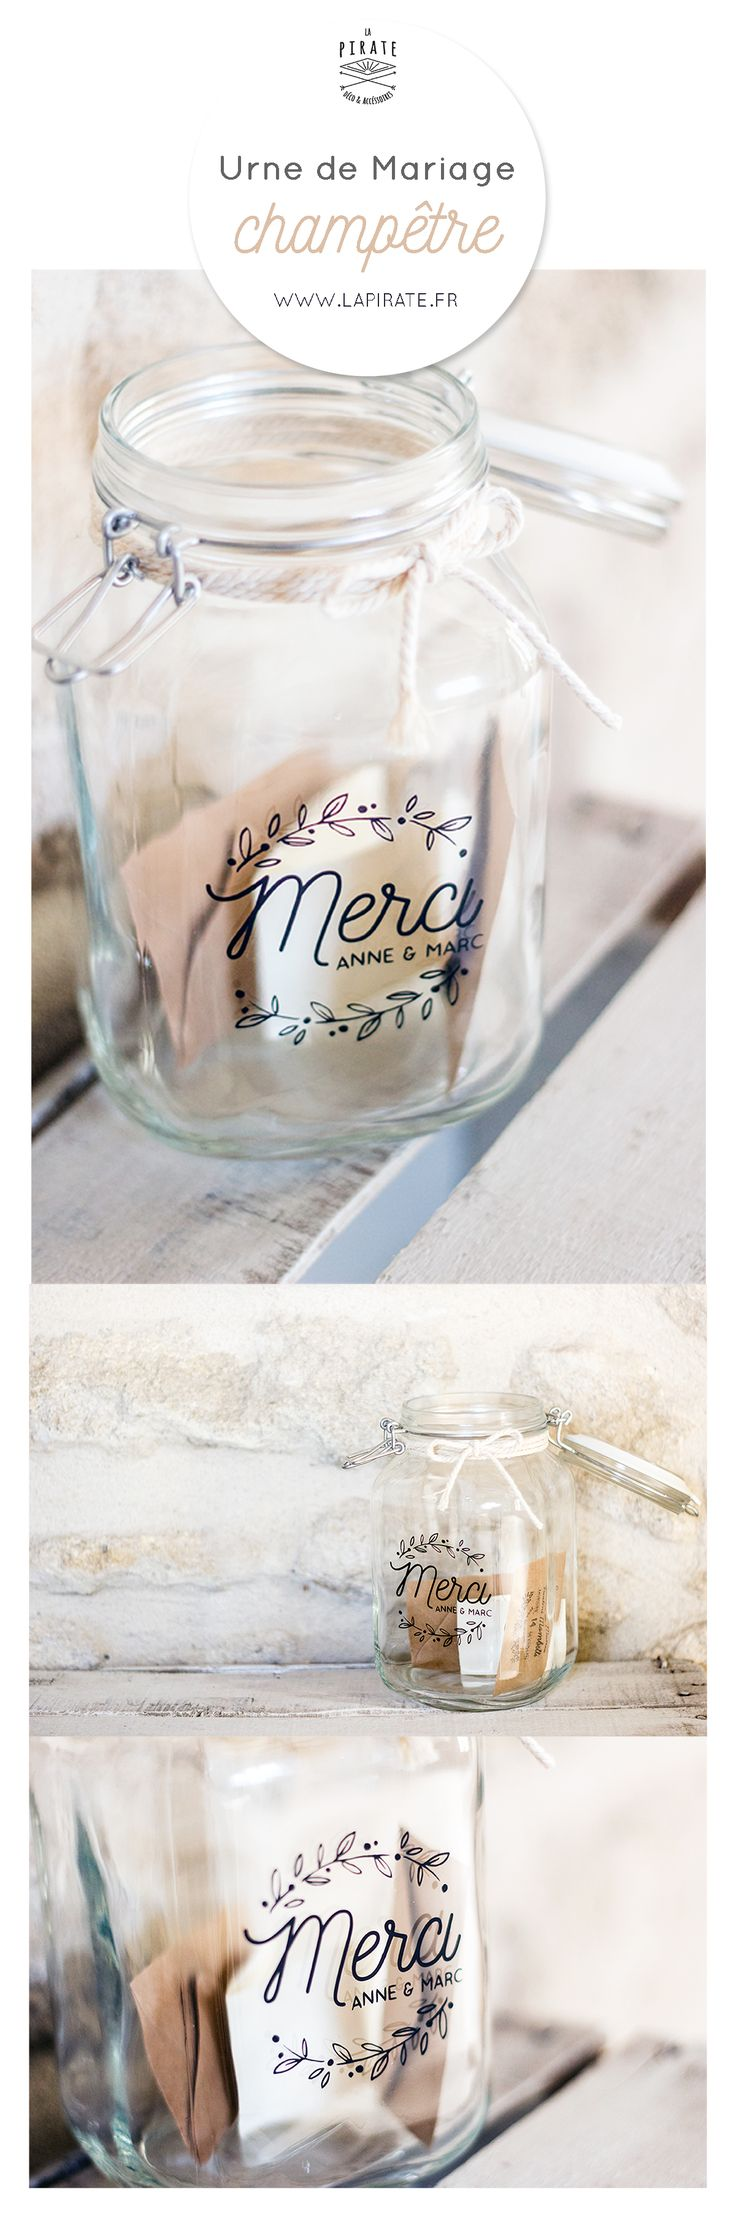 25 best ideas about sister wedding on pinterest wedding gift for sister bridesmaid presents - Urne mariage originale ...